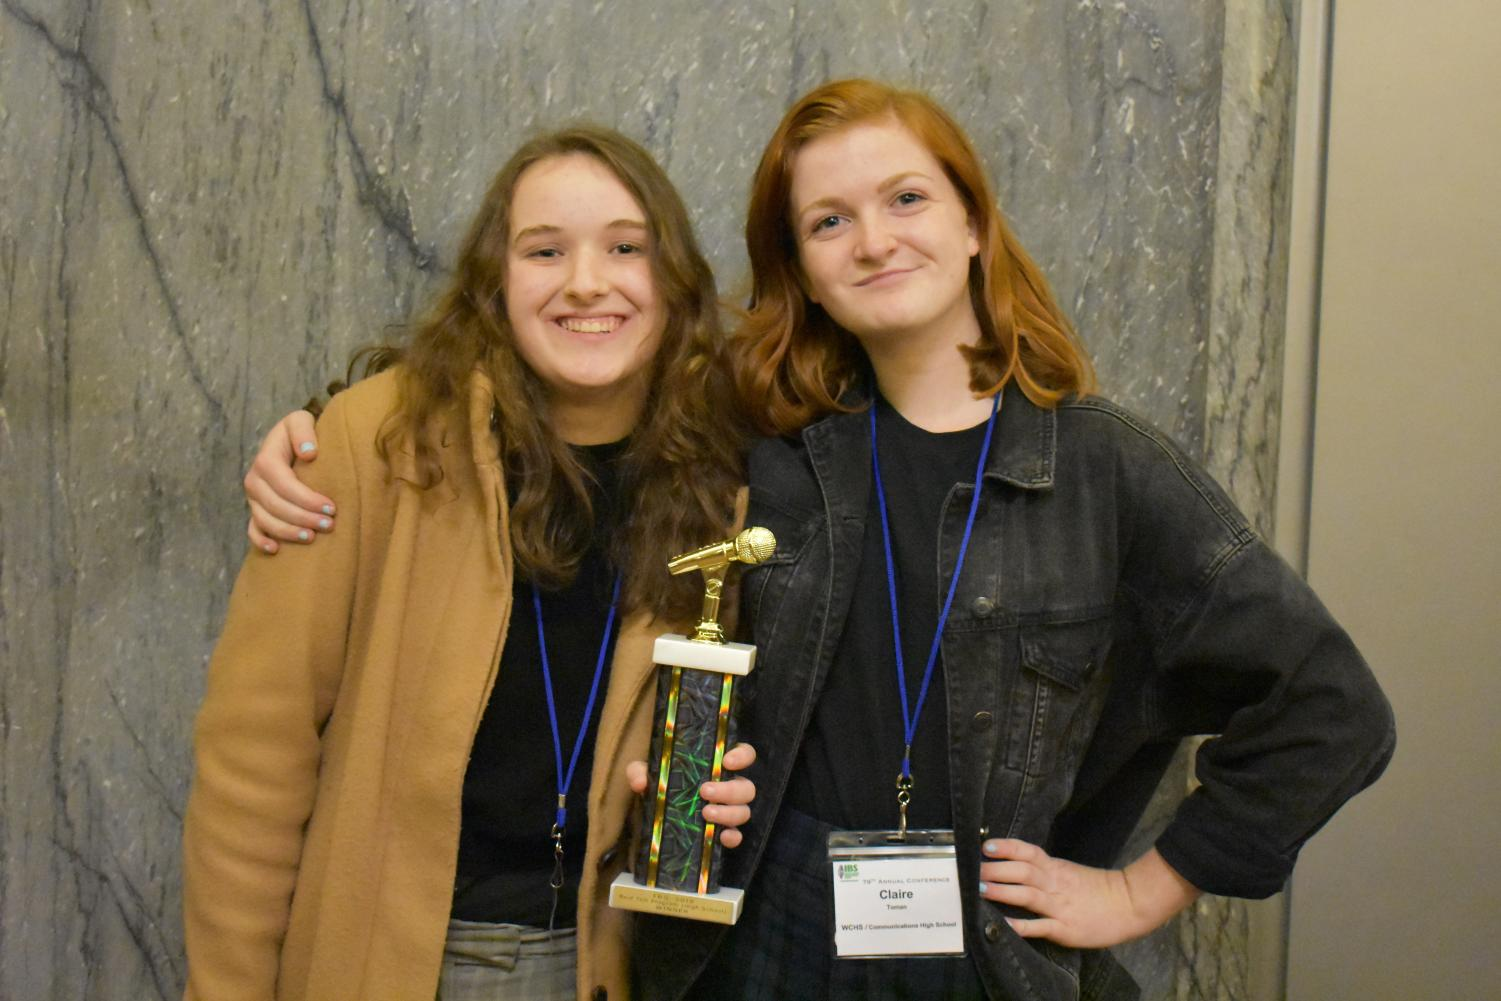 Seniors Michelle Moroses of Wall, left, Clare Toman of Spring Lake Heights and Merina Spaltro of Allentown (not pictured) received the Best Talk Program award at the IBS Awards on Friday, March 1.